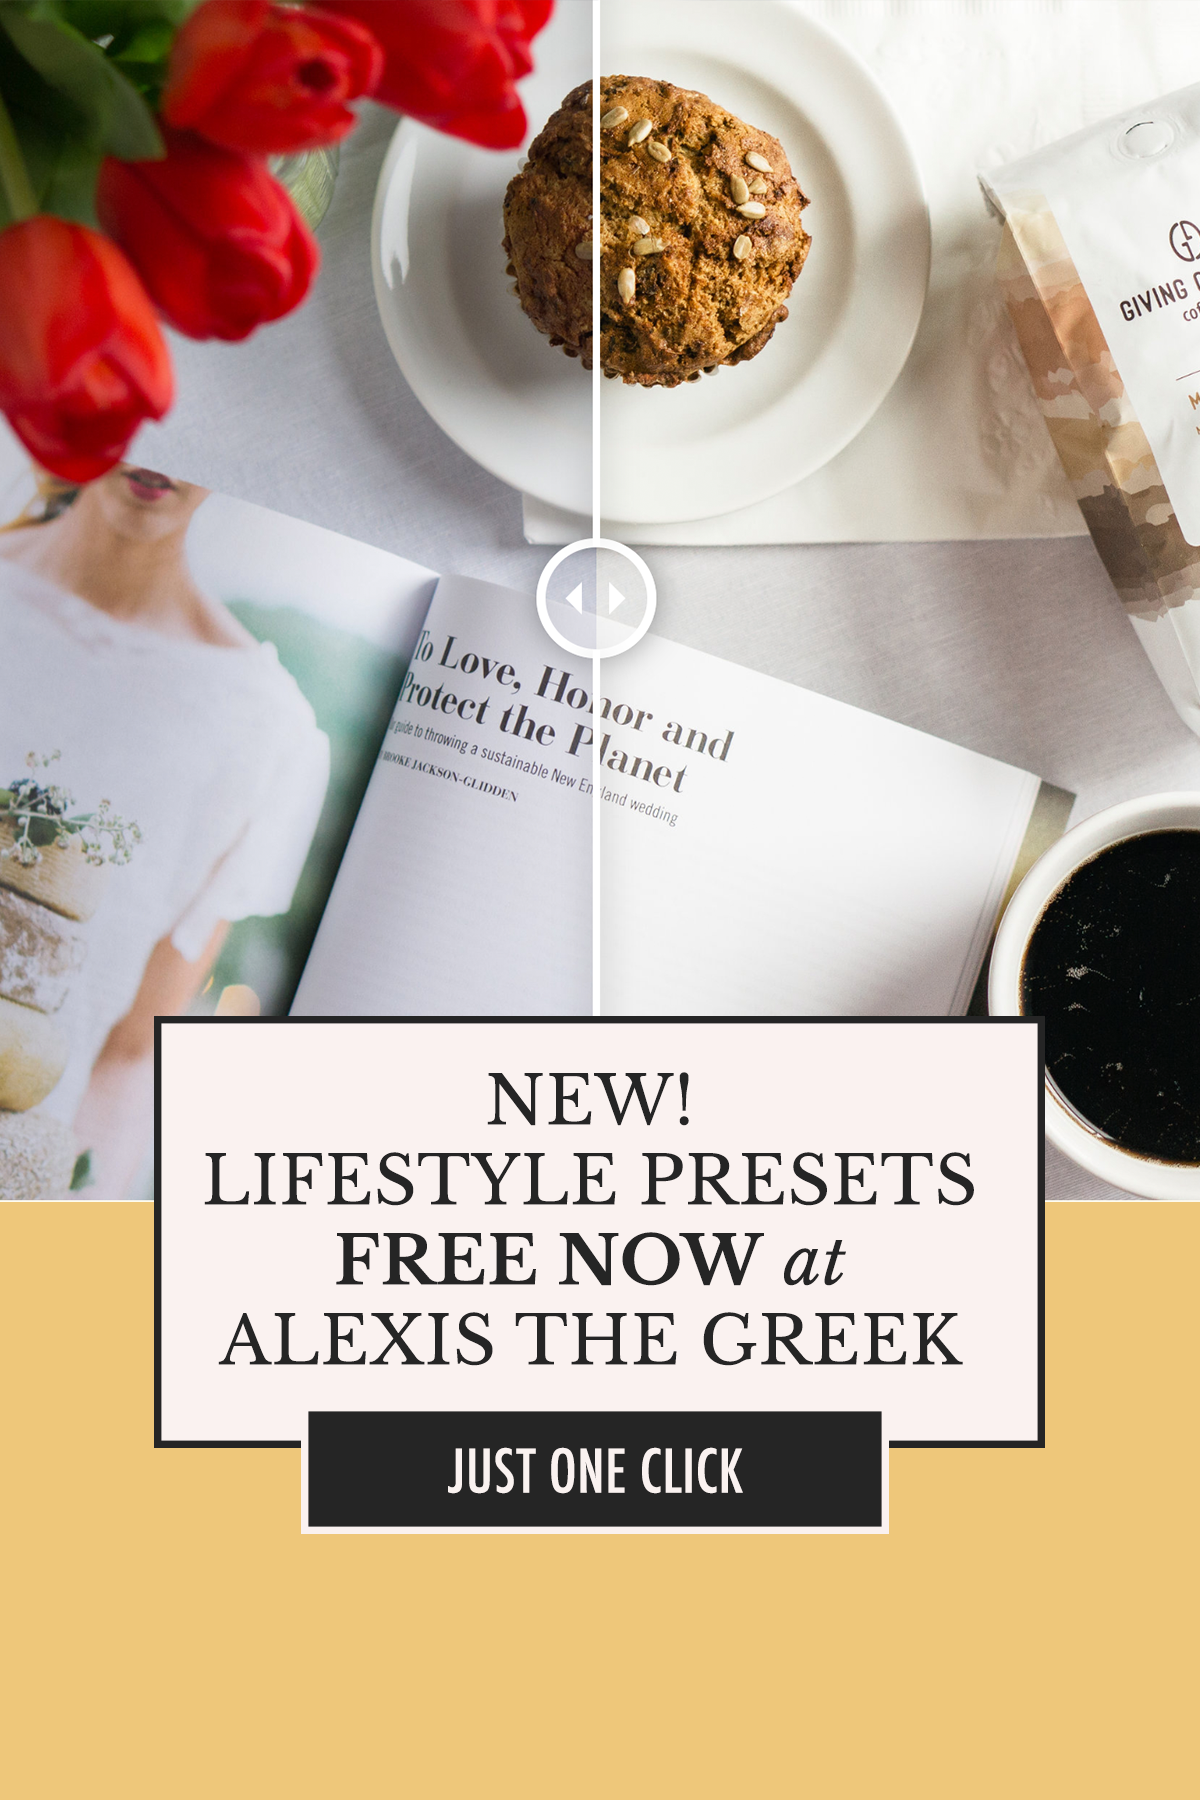 FREE Lightroom Presets—no catch! Get these 3 lifestyle presets at alexisthegreek.com | Alexis The Greek blog